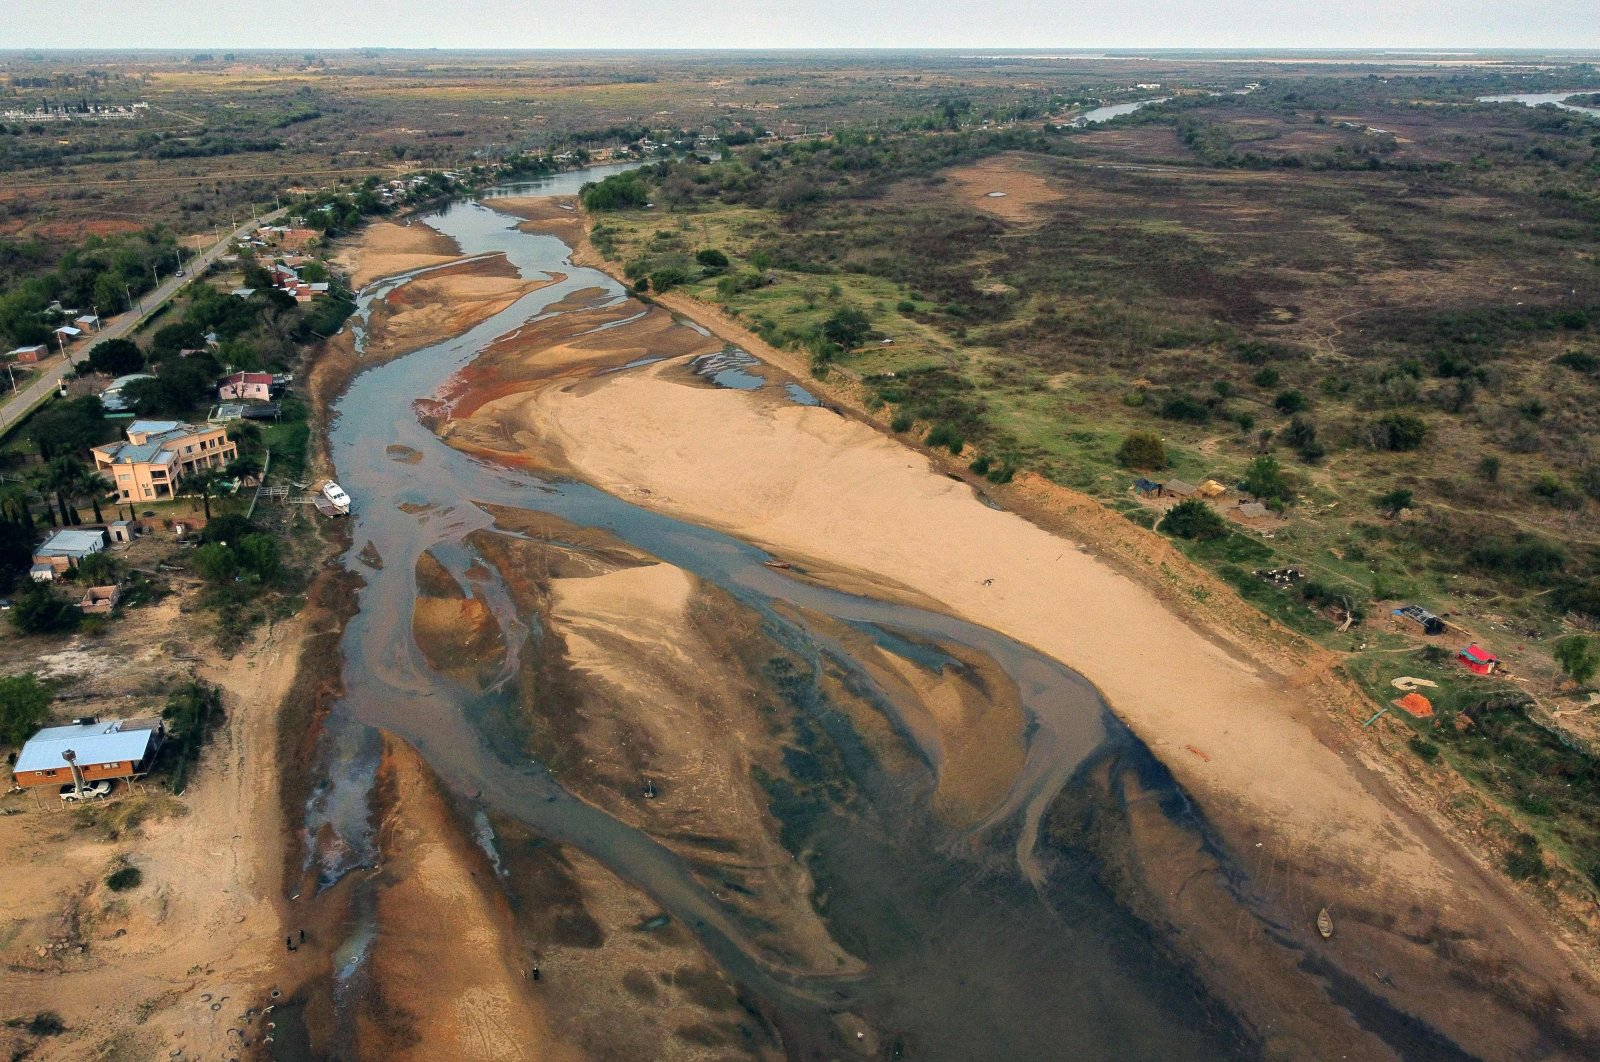 Aerial view of an almost dry arm of the Parana River during a historic downspout in Goya, Corrientes, Argentina, Aug. 21, 2021. (AFP Photo)